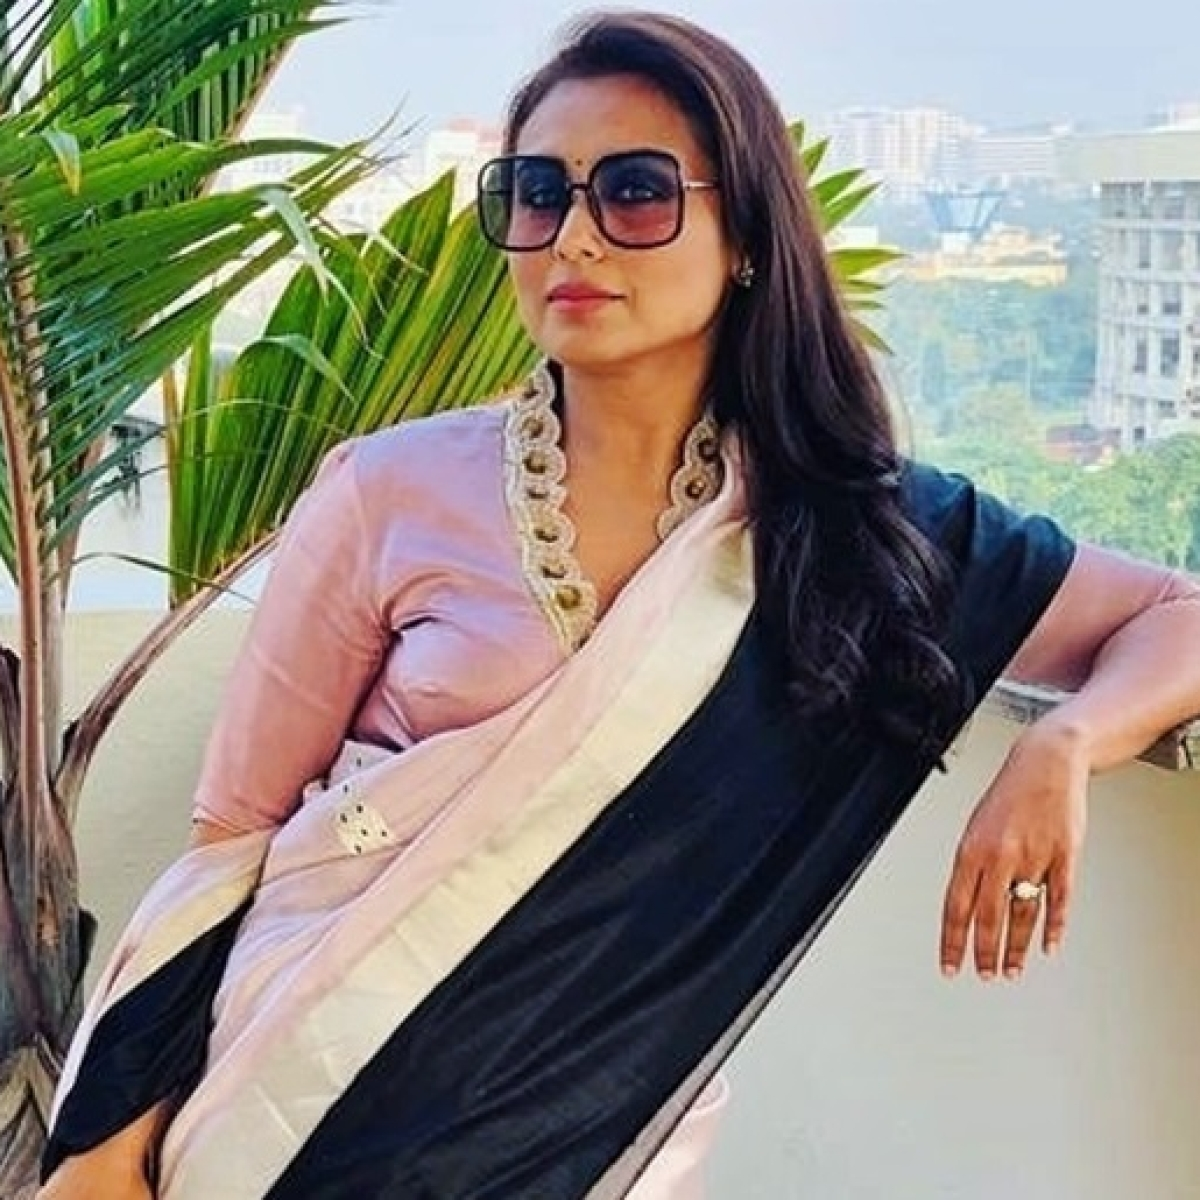 No country can be trademarked safe or unsafe for women: Rani Mukerji